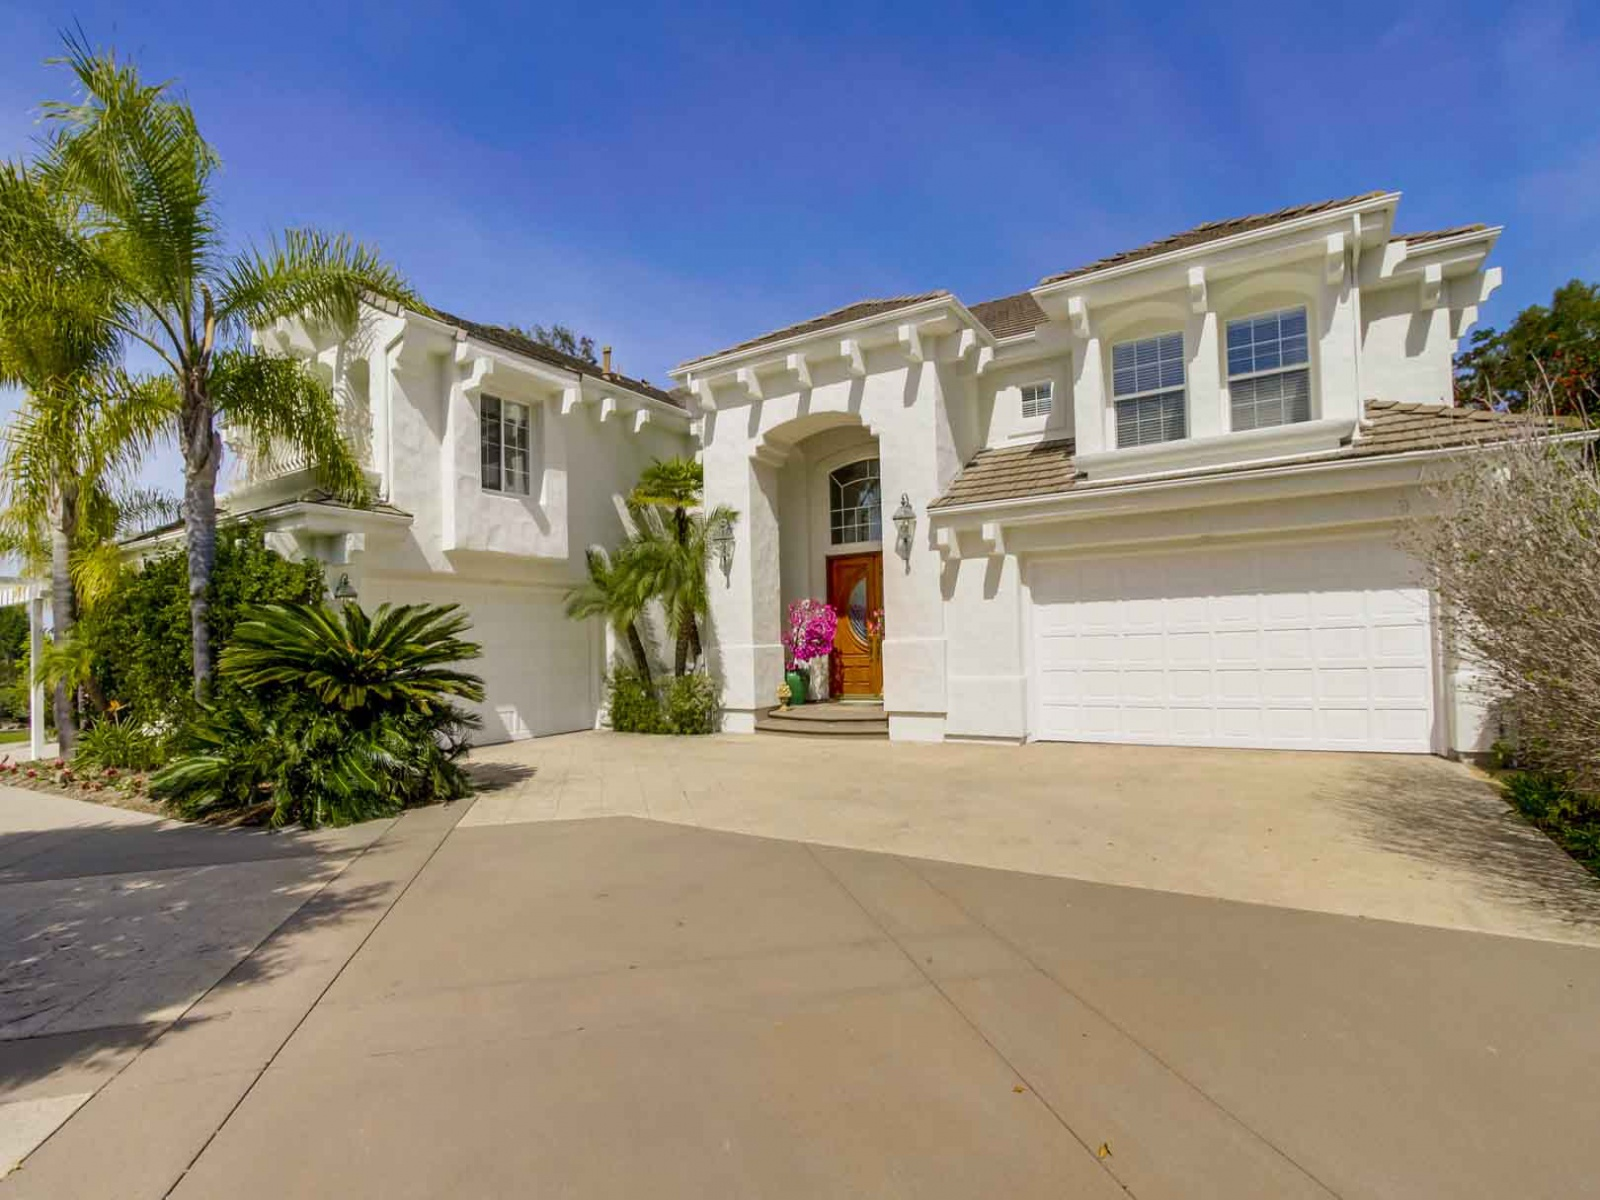 6738 Rancho Lakes Ct,Rancho Santa Fe,California 92067,House,Rancho Lakes Ct,1009